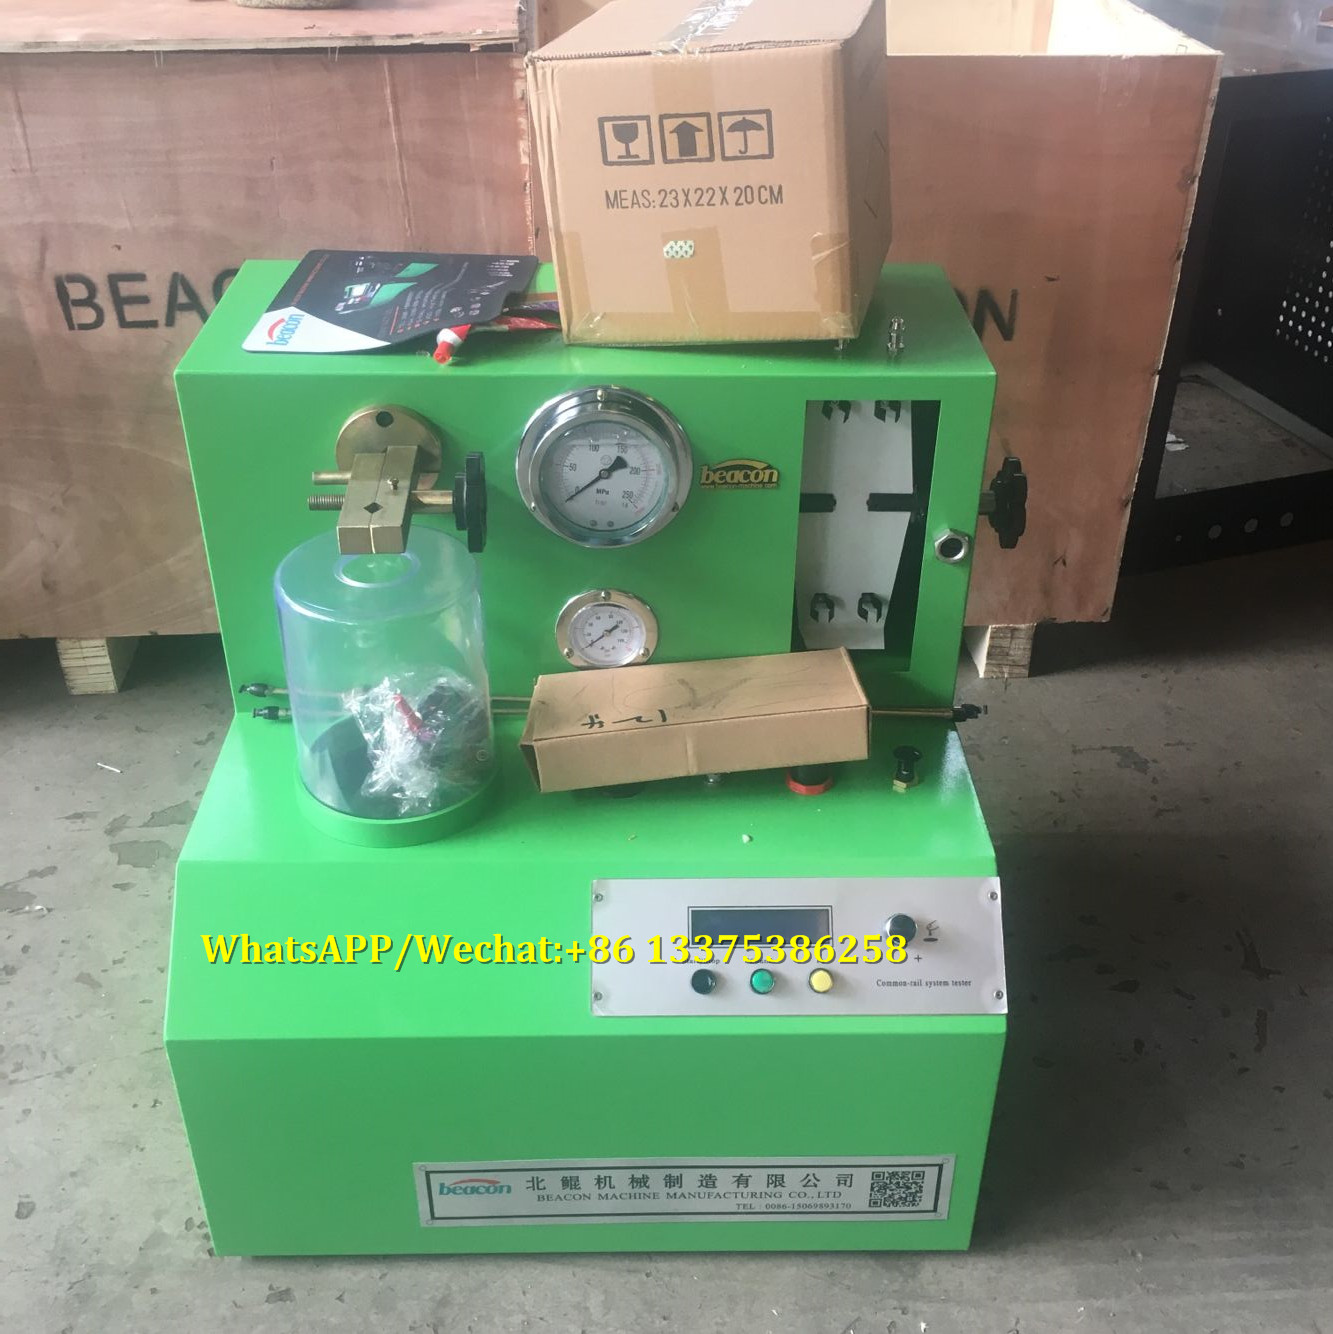 PQ1000 CRDI common rail diesel system injector test bench